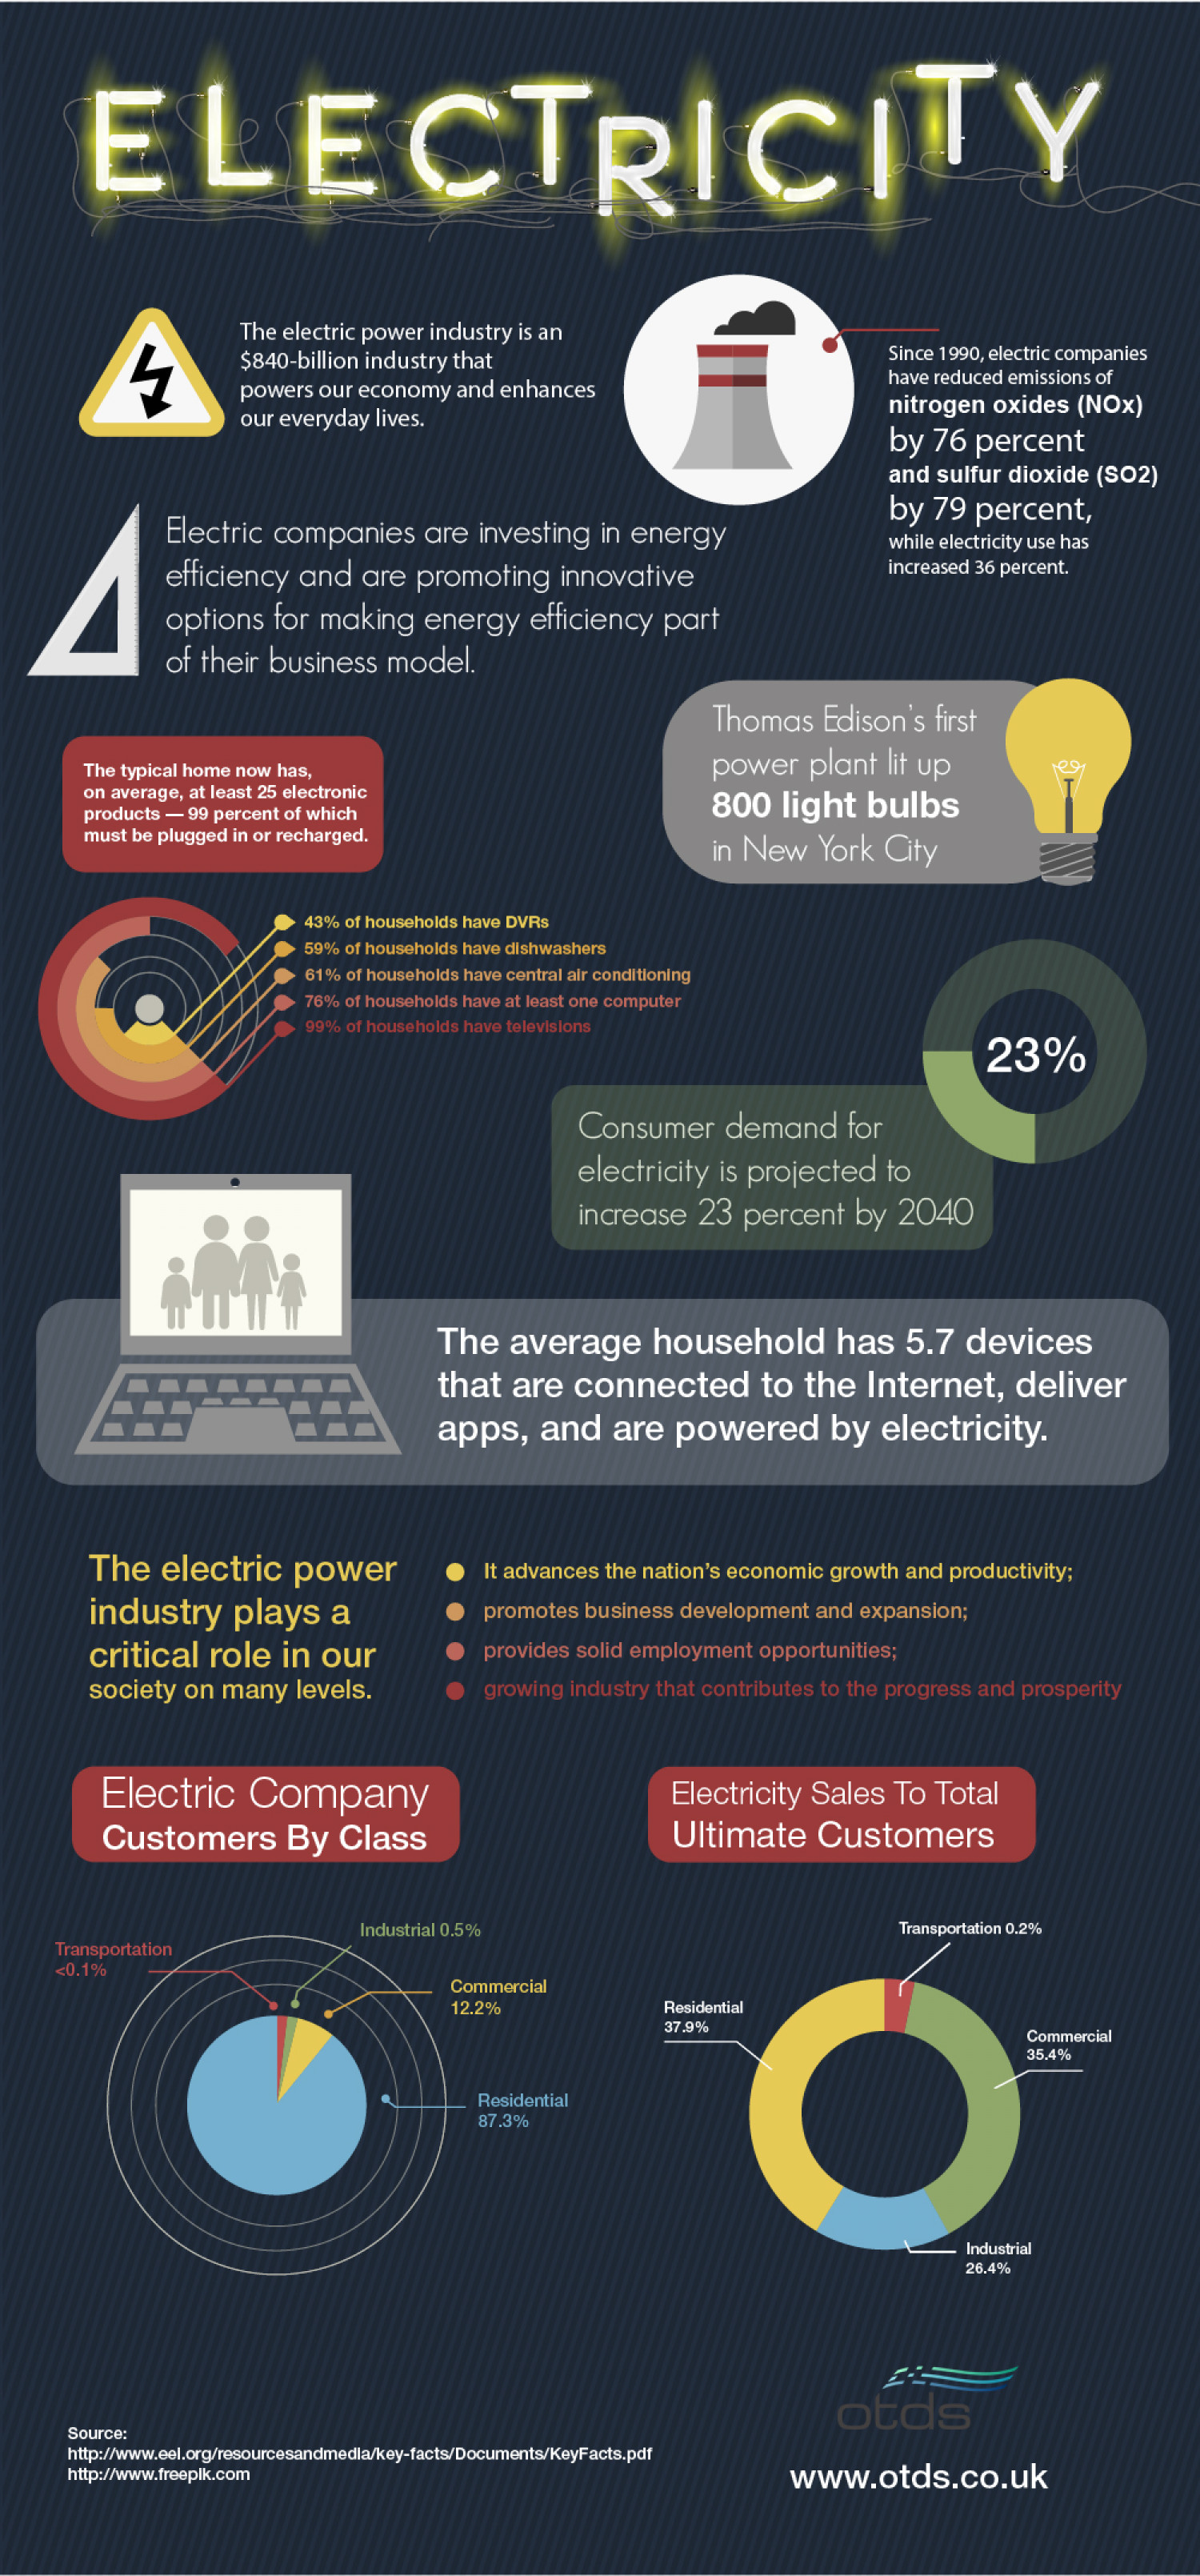 Interesting Facts About Electric Power Industry - Infographic Infographic